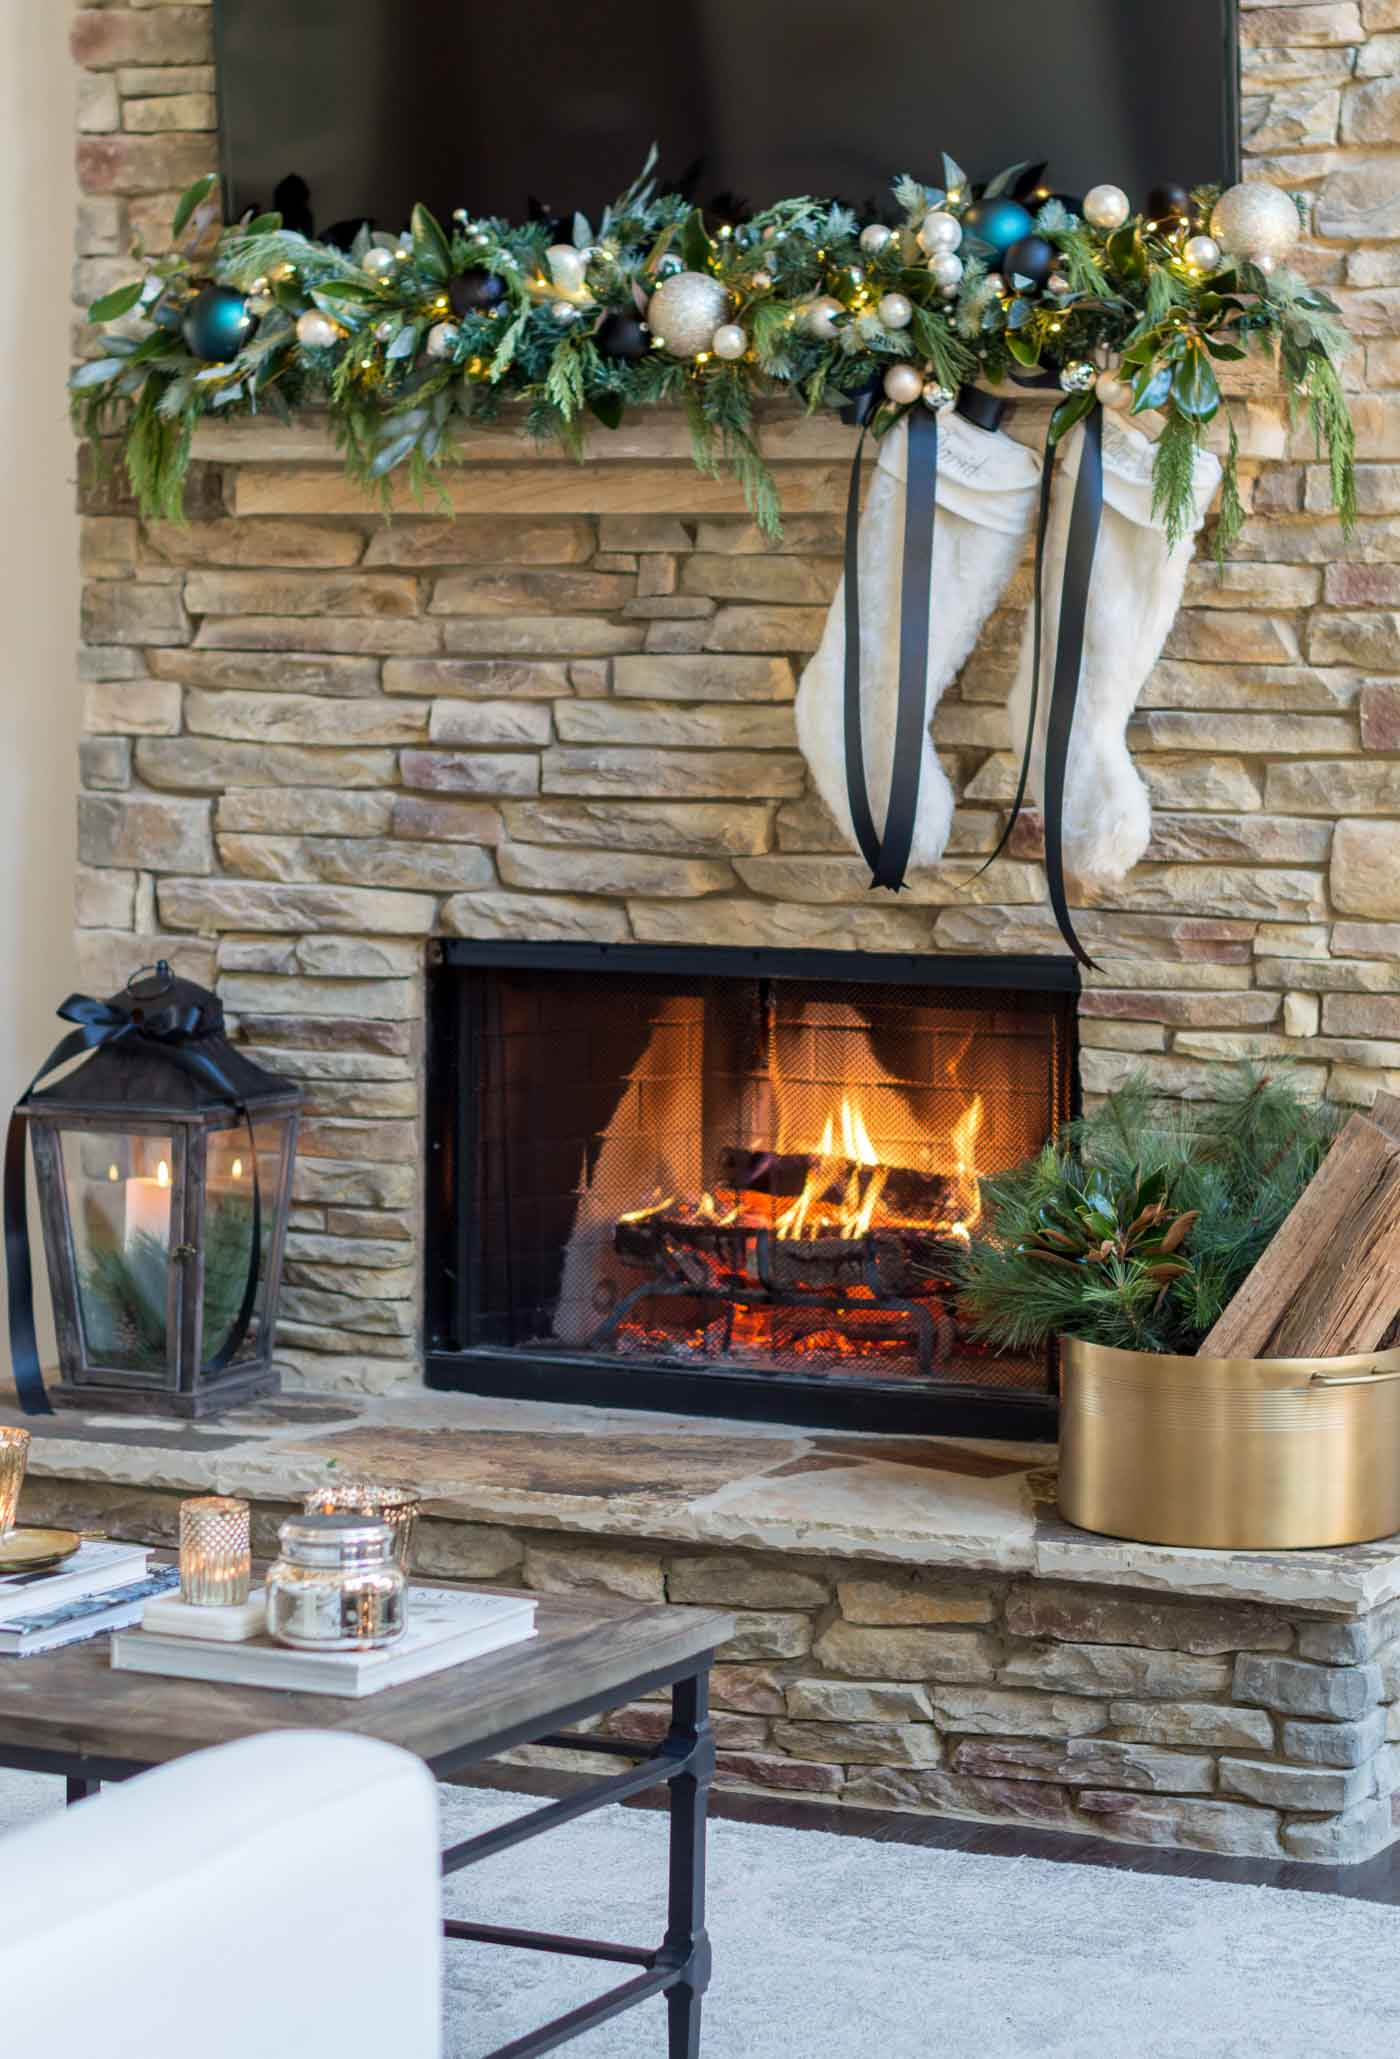 How to style and decorate a Christmas fireplace adn mantel